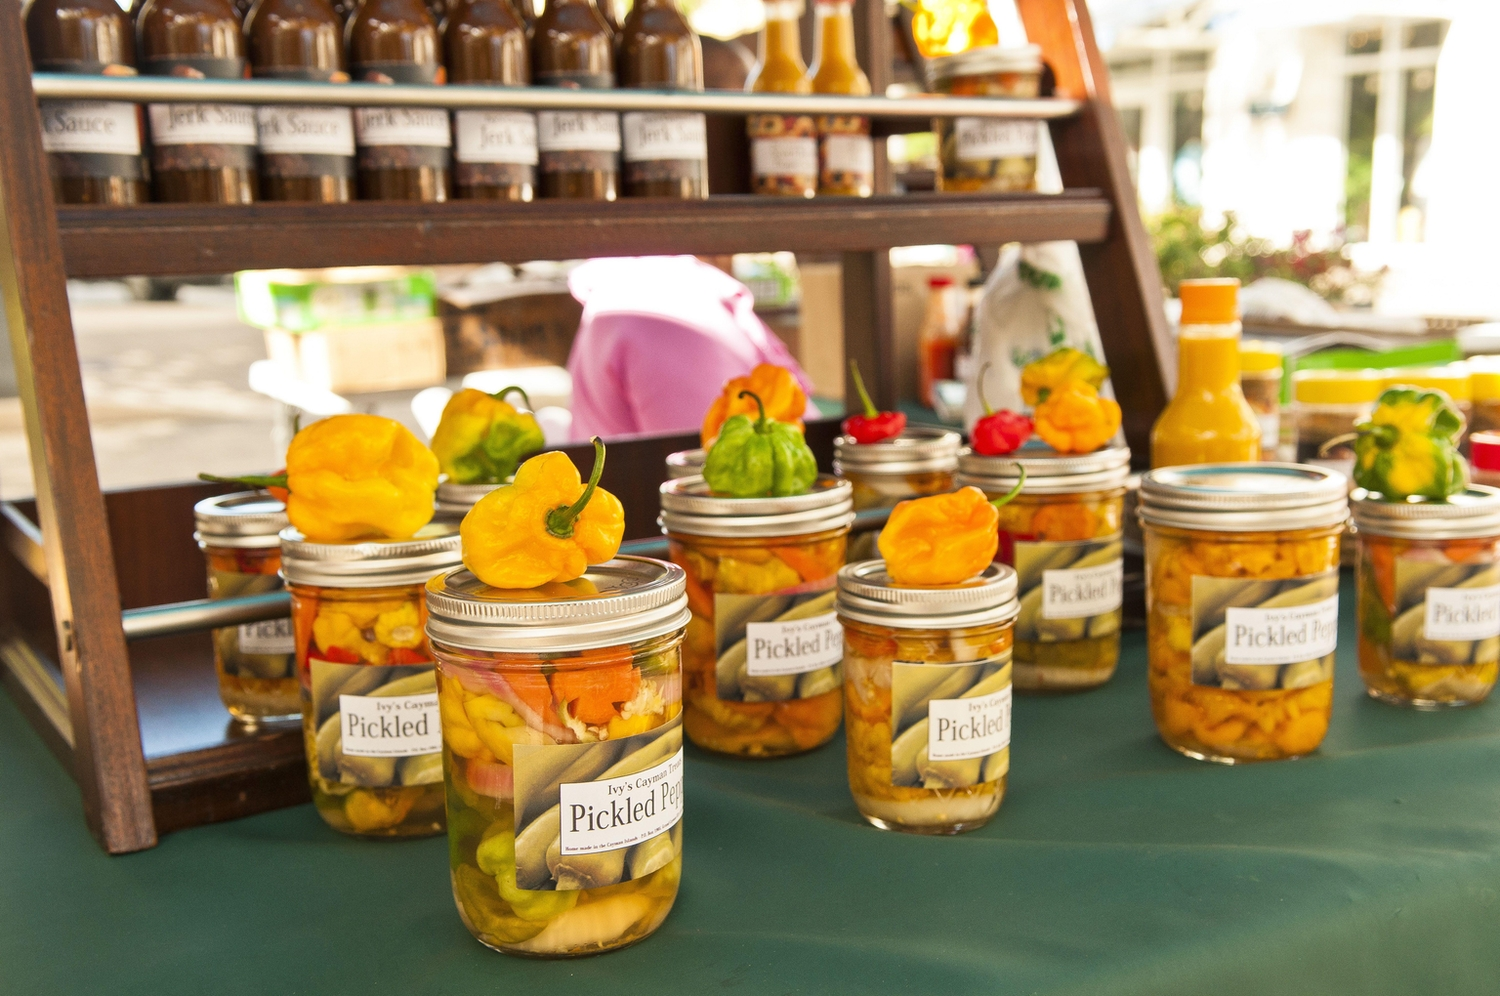 Locally made pickled peppers at the farmers market